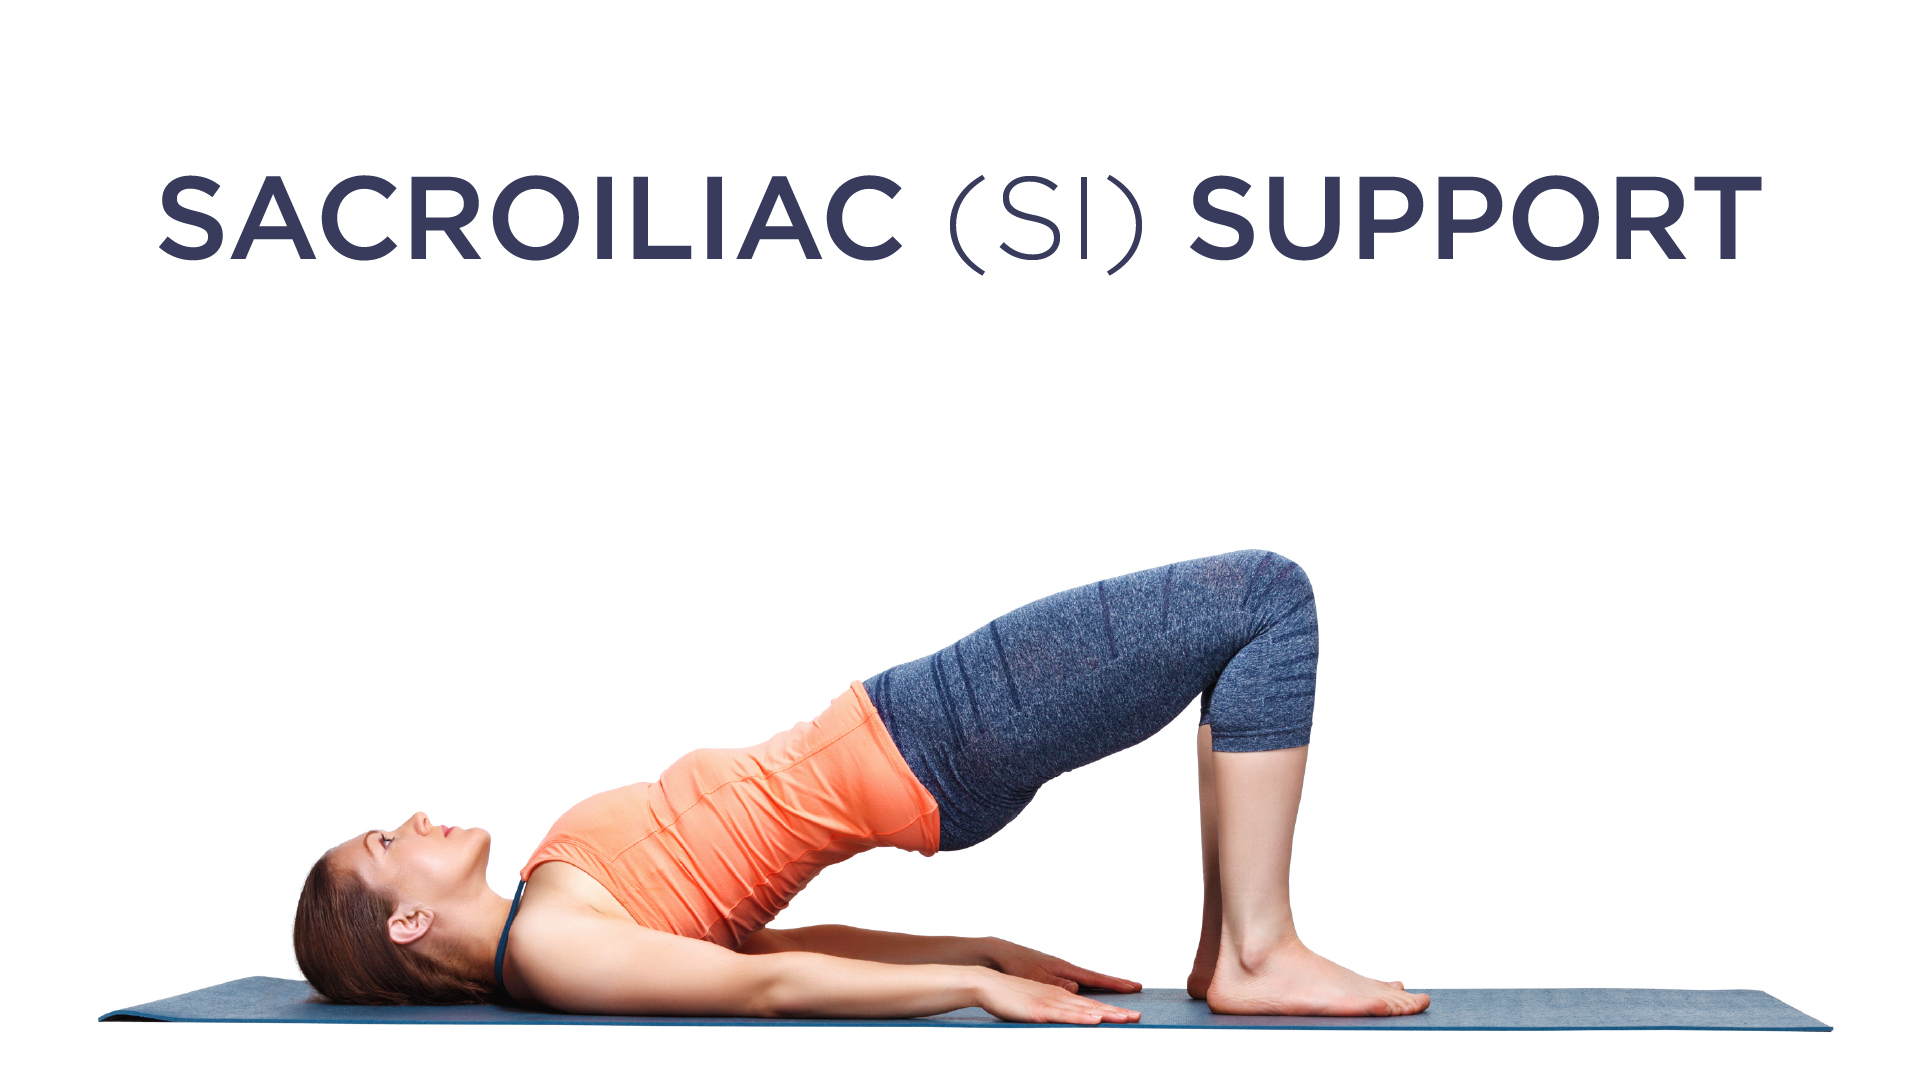 Sacroiliac support yoga international solutioingenieria Choice Image